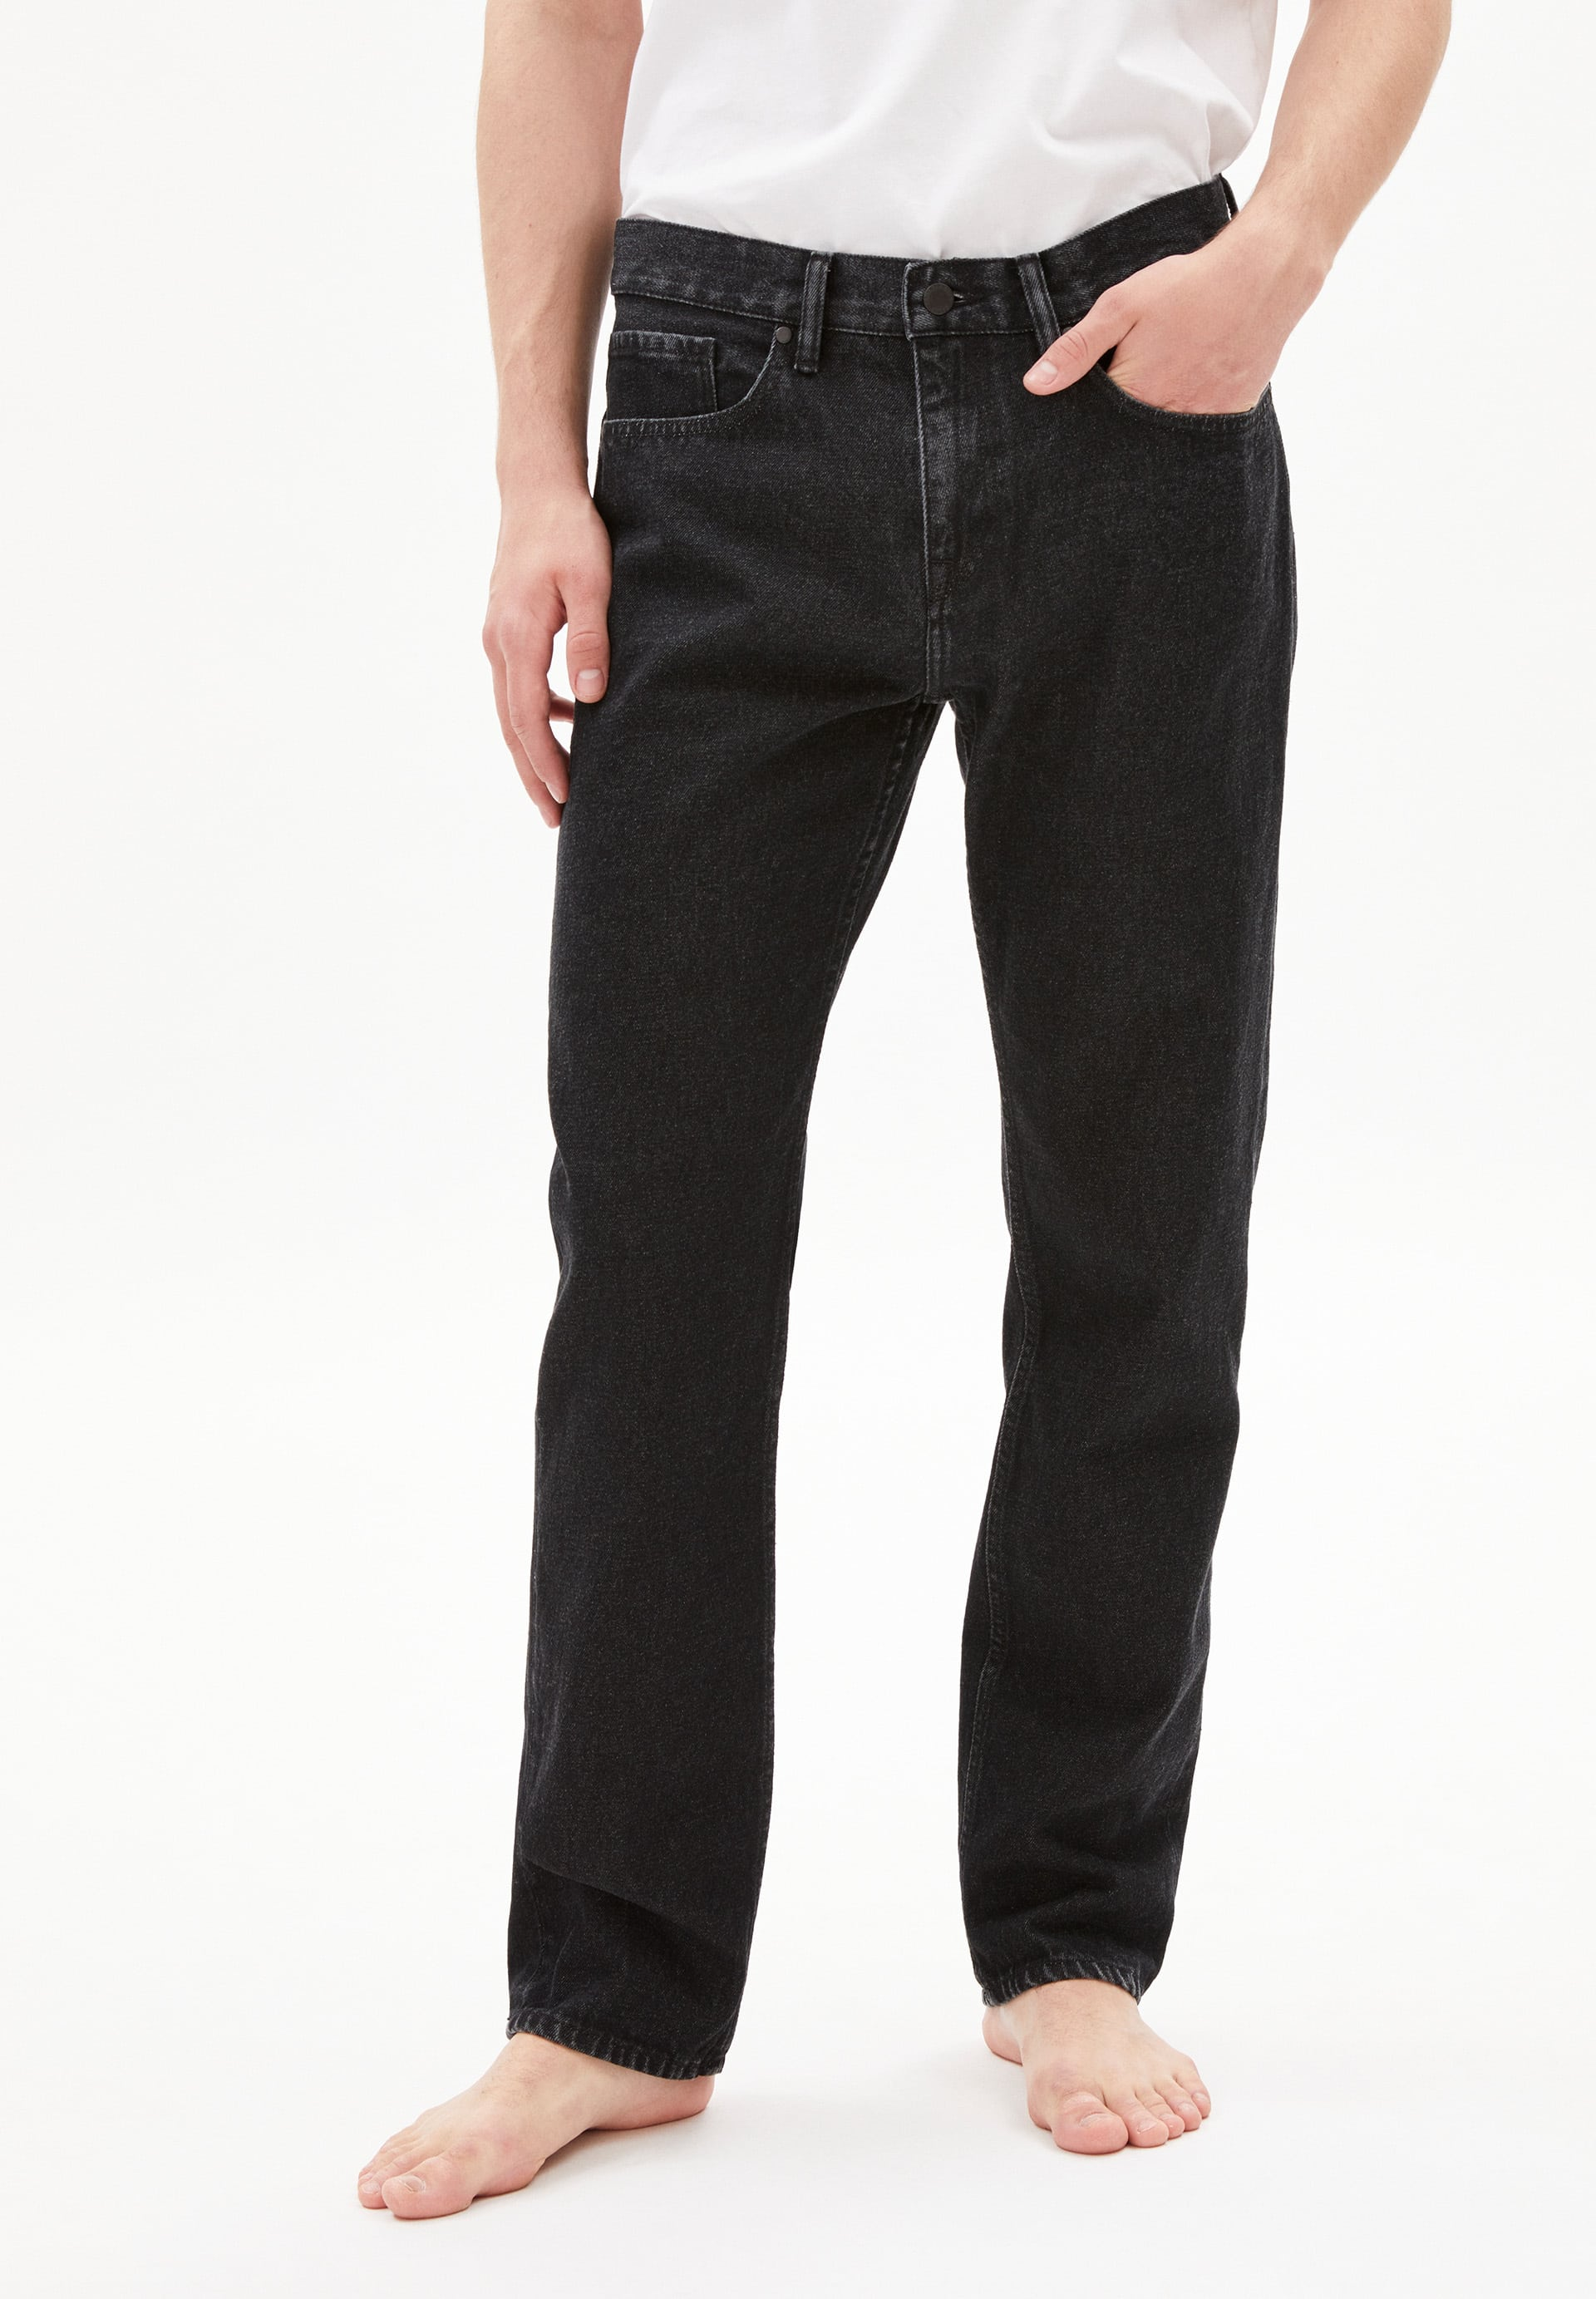 DYLAAN DRY BLACK